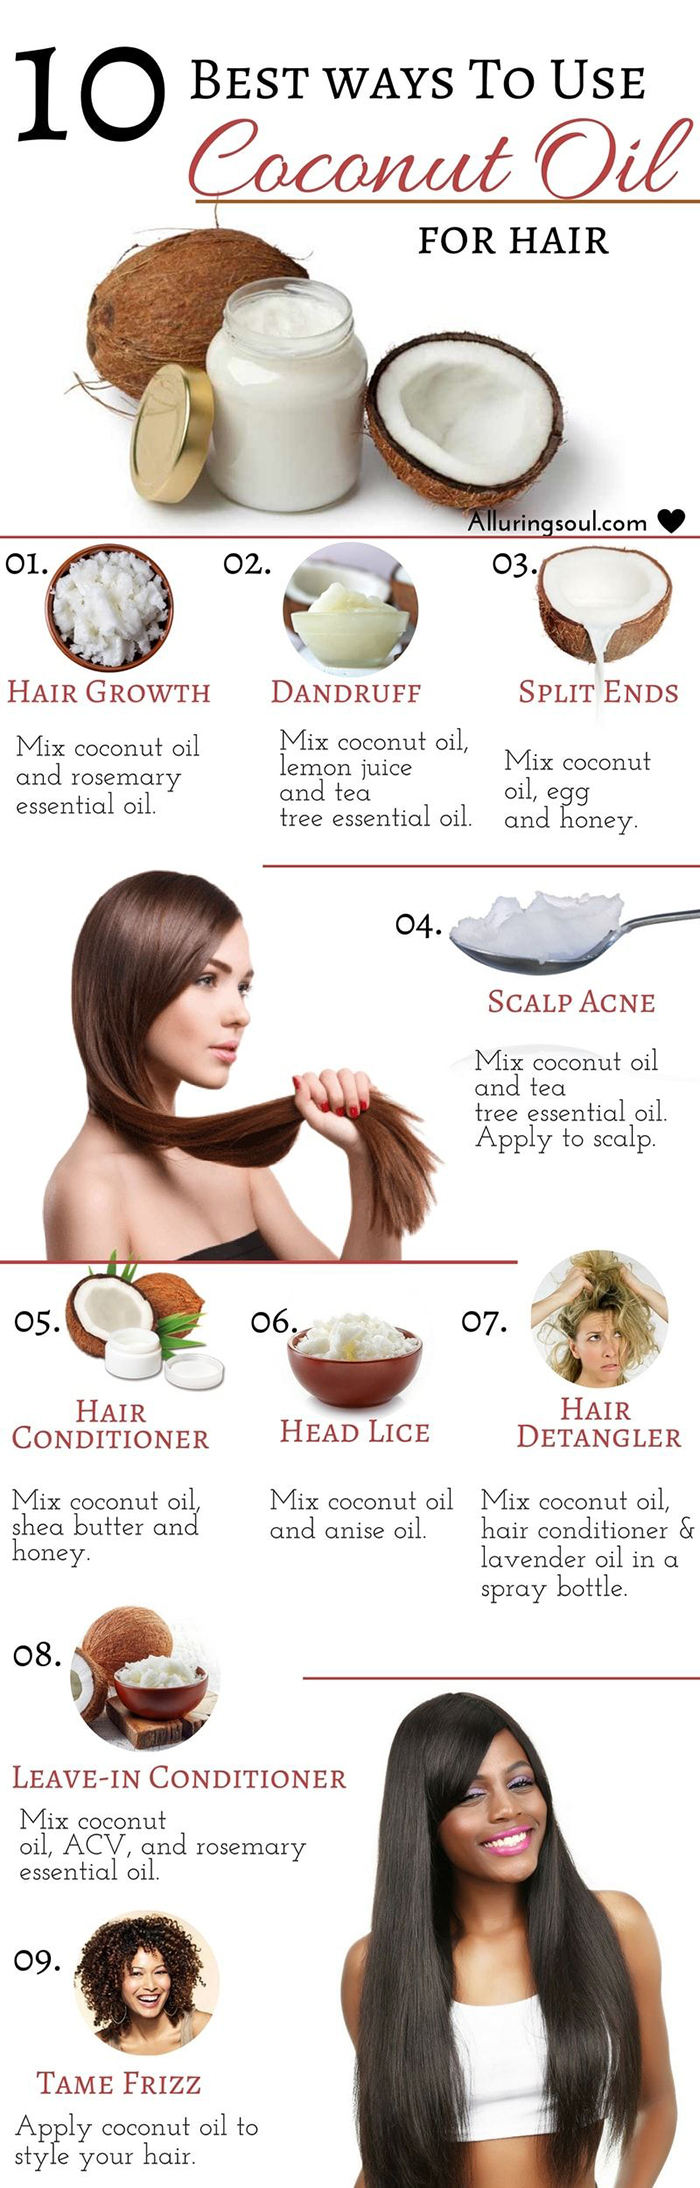 10-WAYS-TO-USE-COCONUT-OIL-FOR-HEALTHIER-HAIR